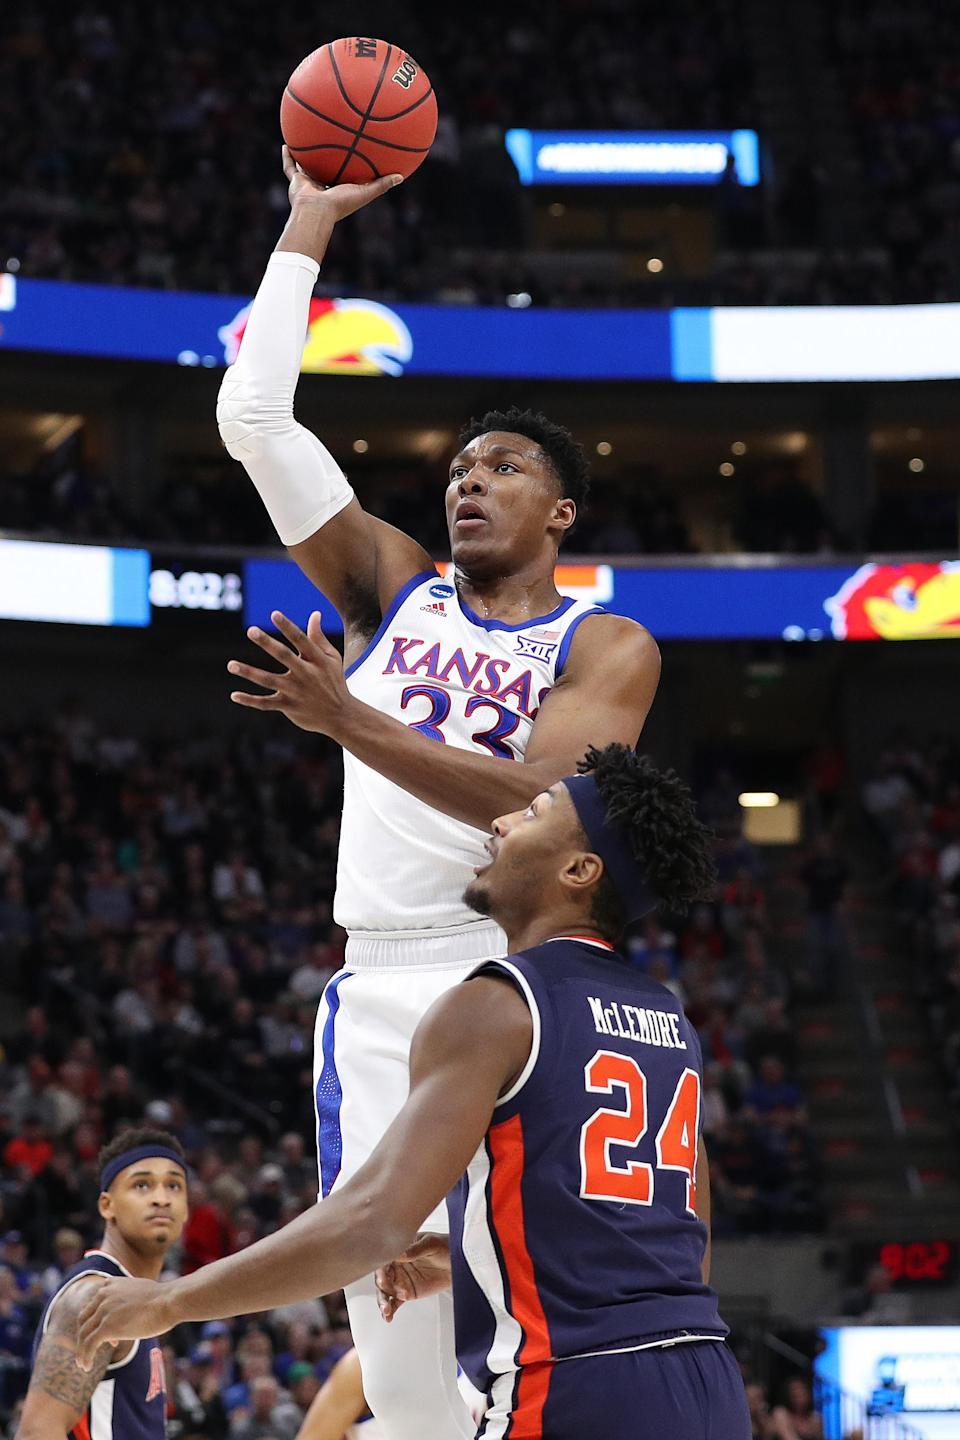 <p>David McCormack #33 of the Kansas Jayhawks goes up for a shot against Anfernee McLemore #24 of the Auburn Tigers during their game in the Second Round of the NCAA Basketball Tournament at Vivint Smart Home Arena on March 23, 2019 in Salt Lake City, Utah. (Photo by Patrick Smith/Getty Images) </p>